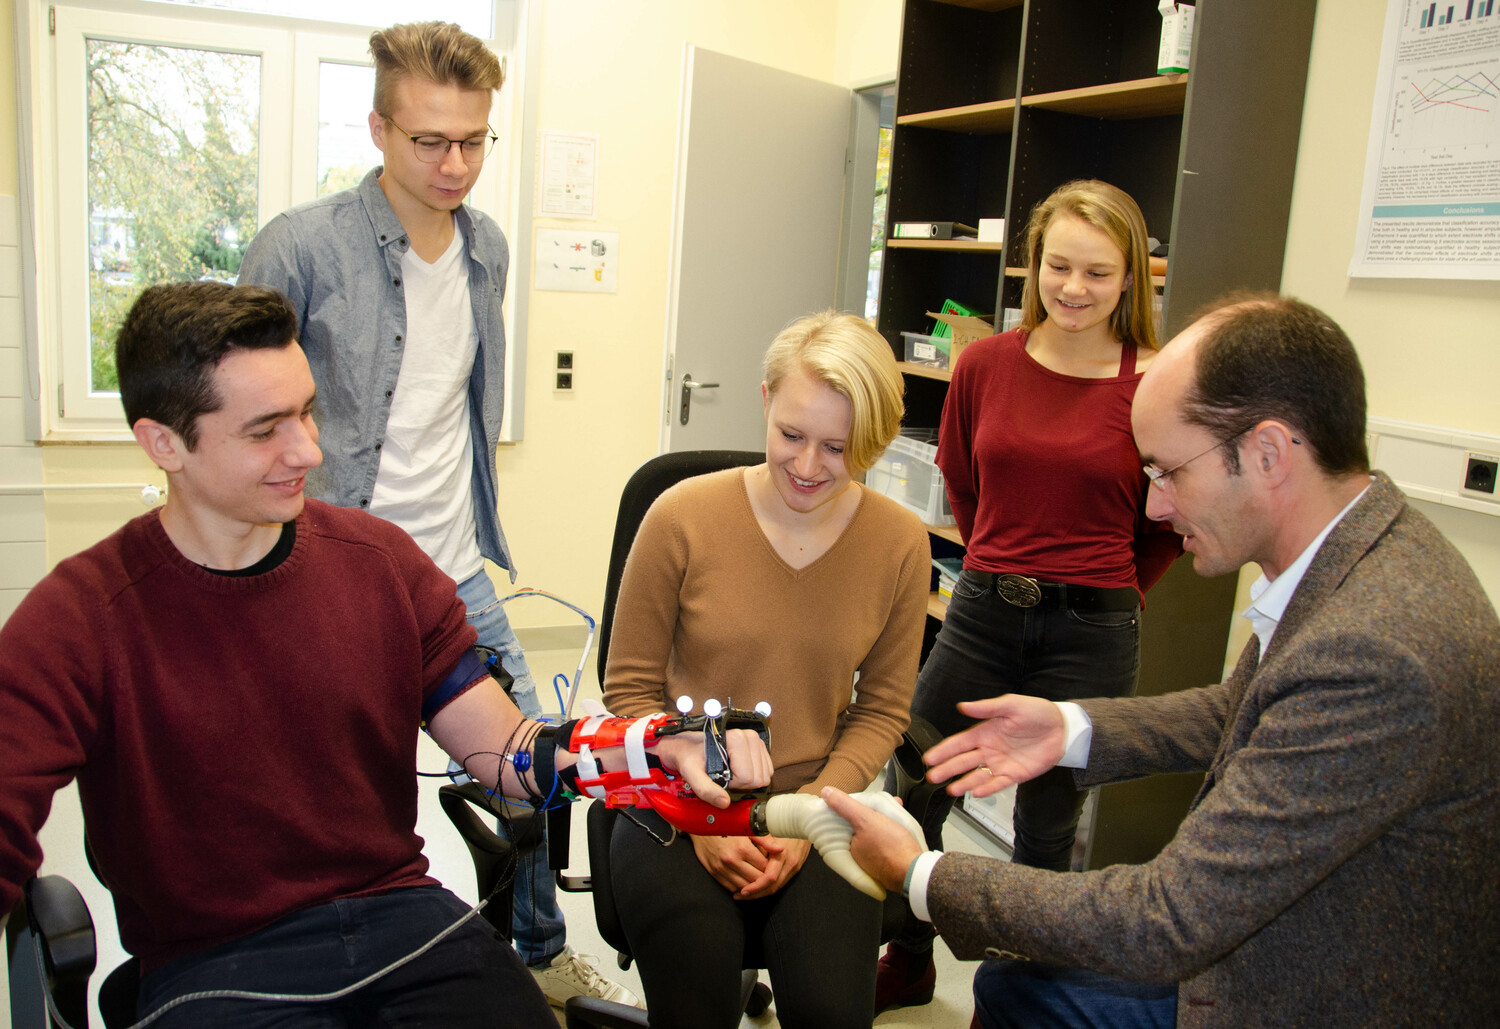 Professor Arndt Schilling from ART-Lab (right) presents the intuitive operation of a hand prosthesis to students of medical engineering at the Gesundheitscampus Göttingen.